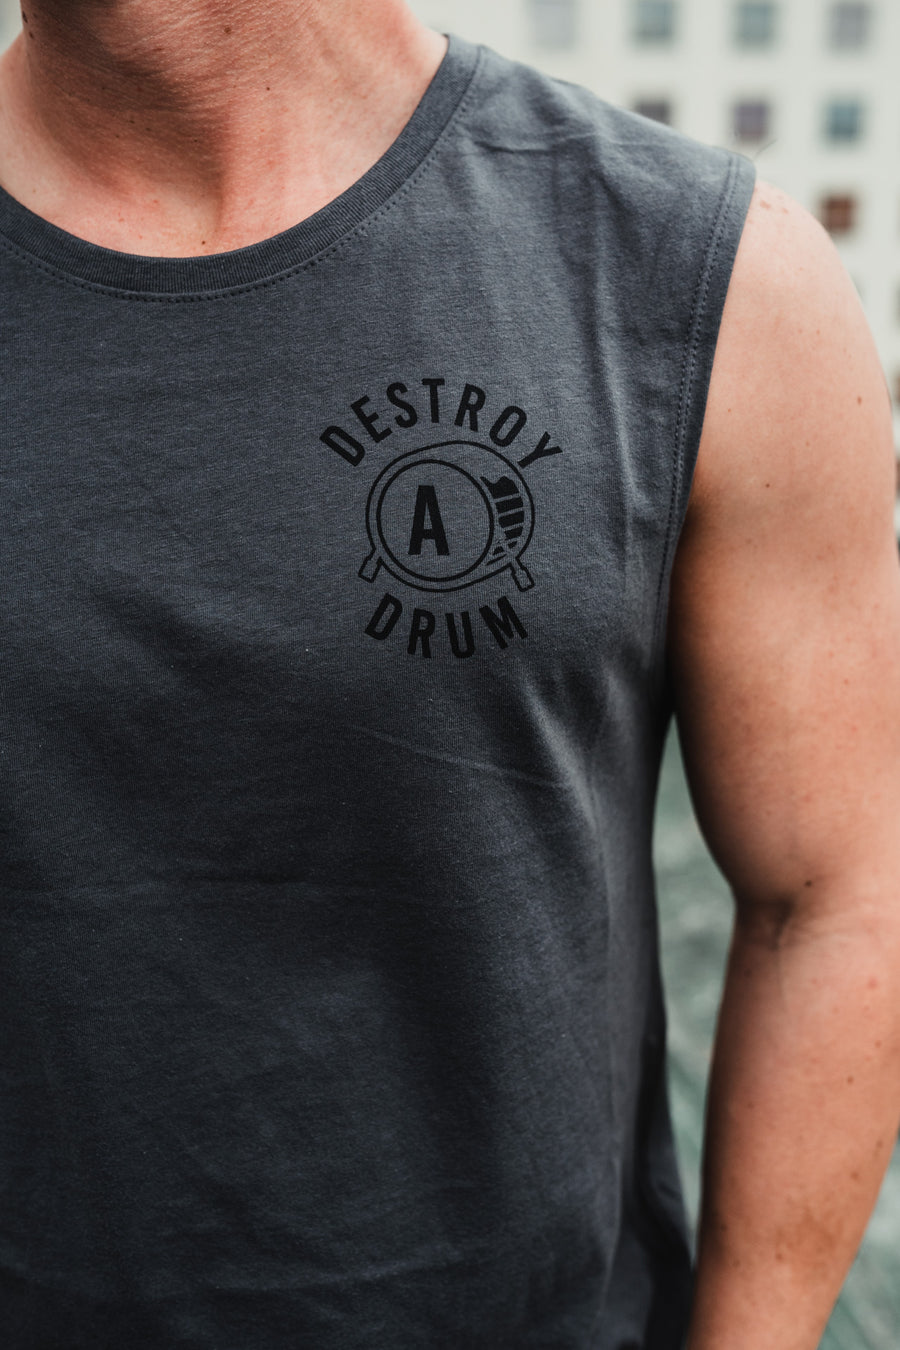 Destroy A Drum Stone Cut Off Tee